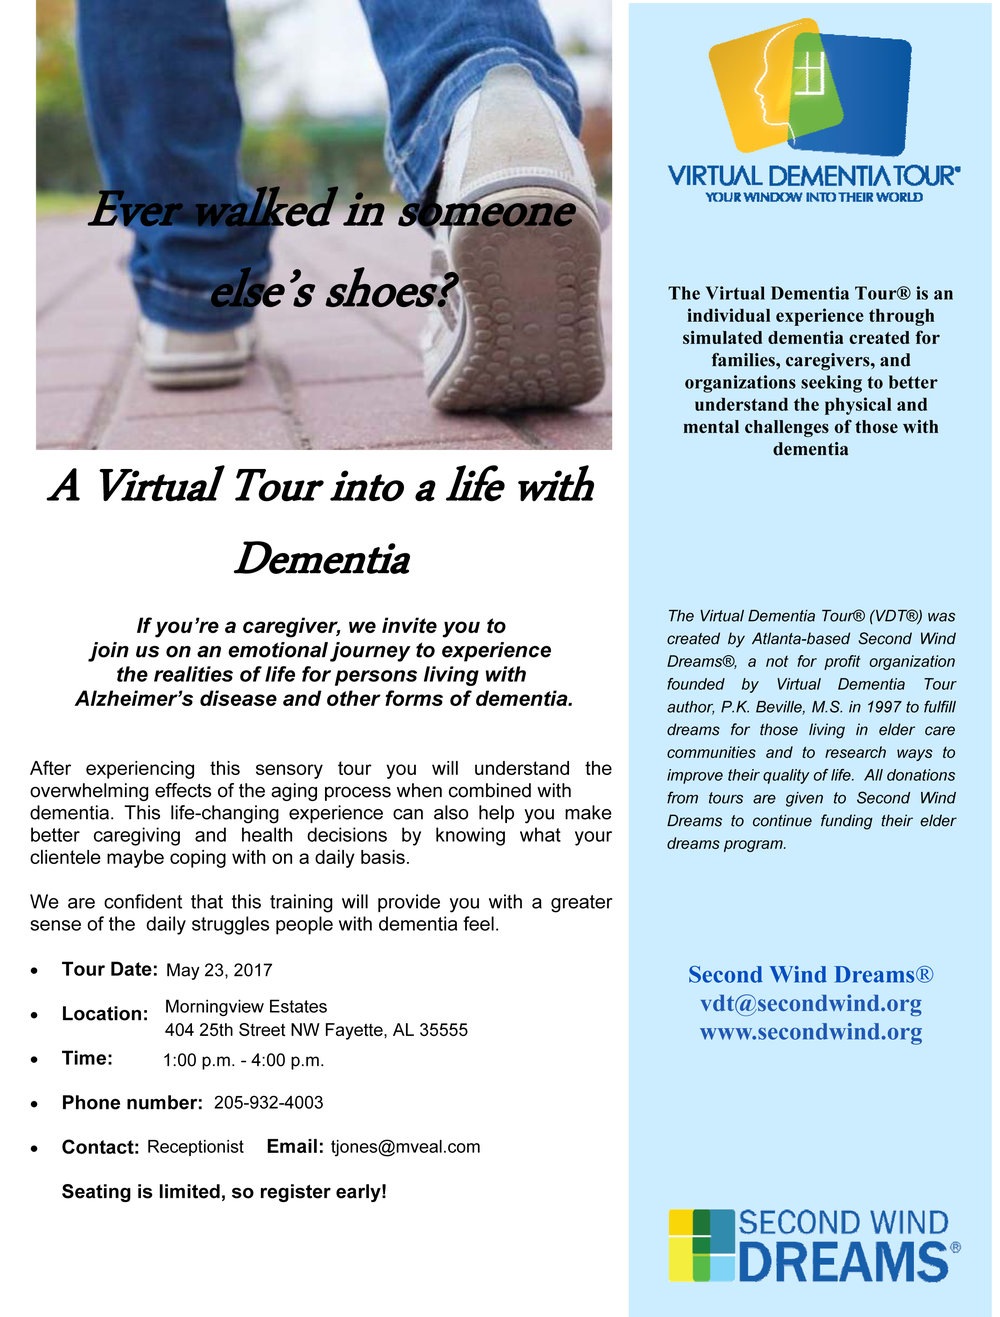 VDT Flier Morningview Estates.jpg